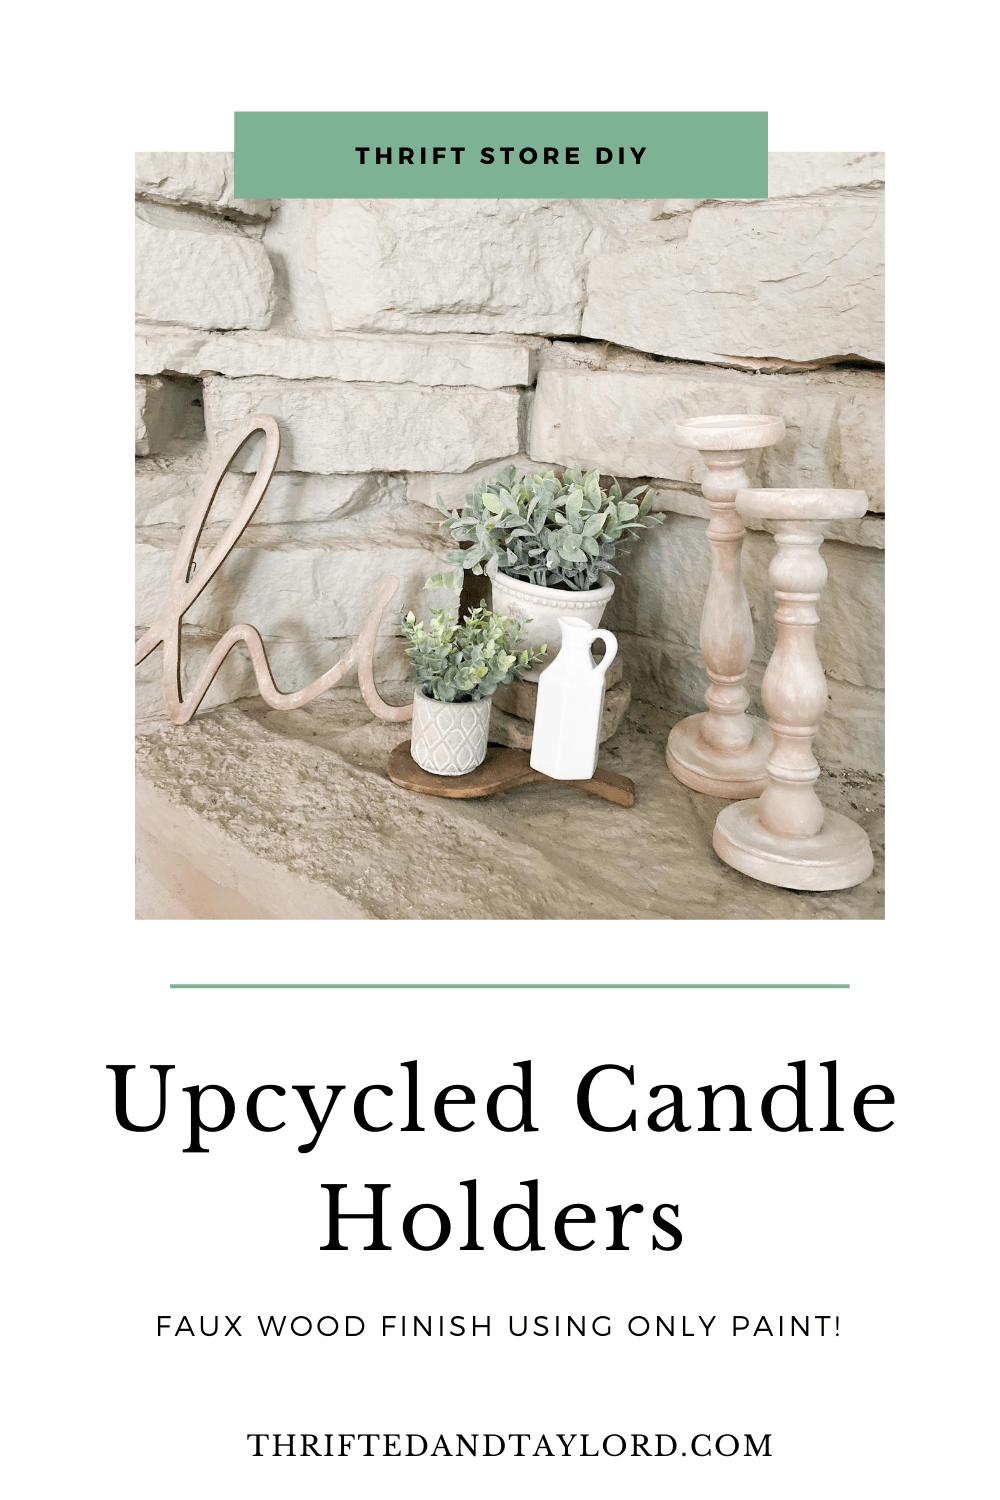 Upcycled Candle Holders | Thrift Store DIY